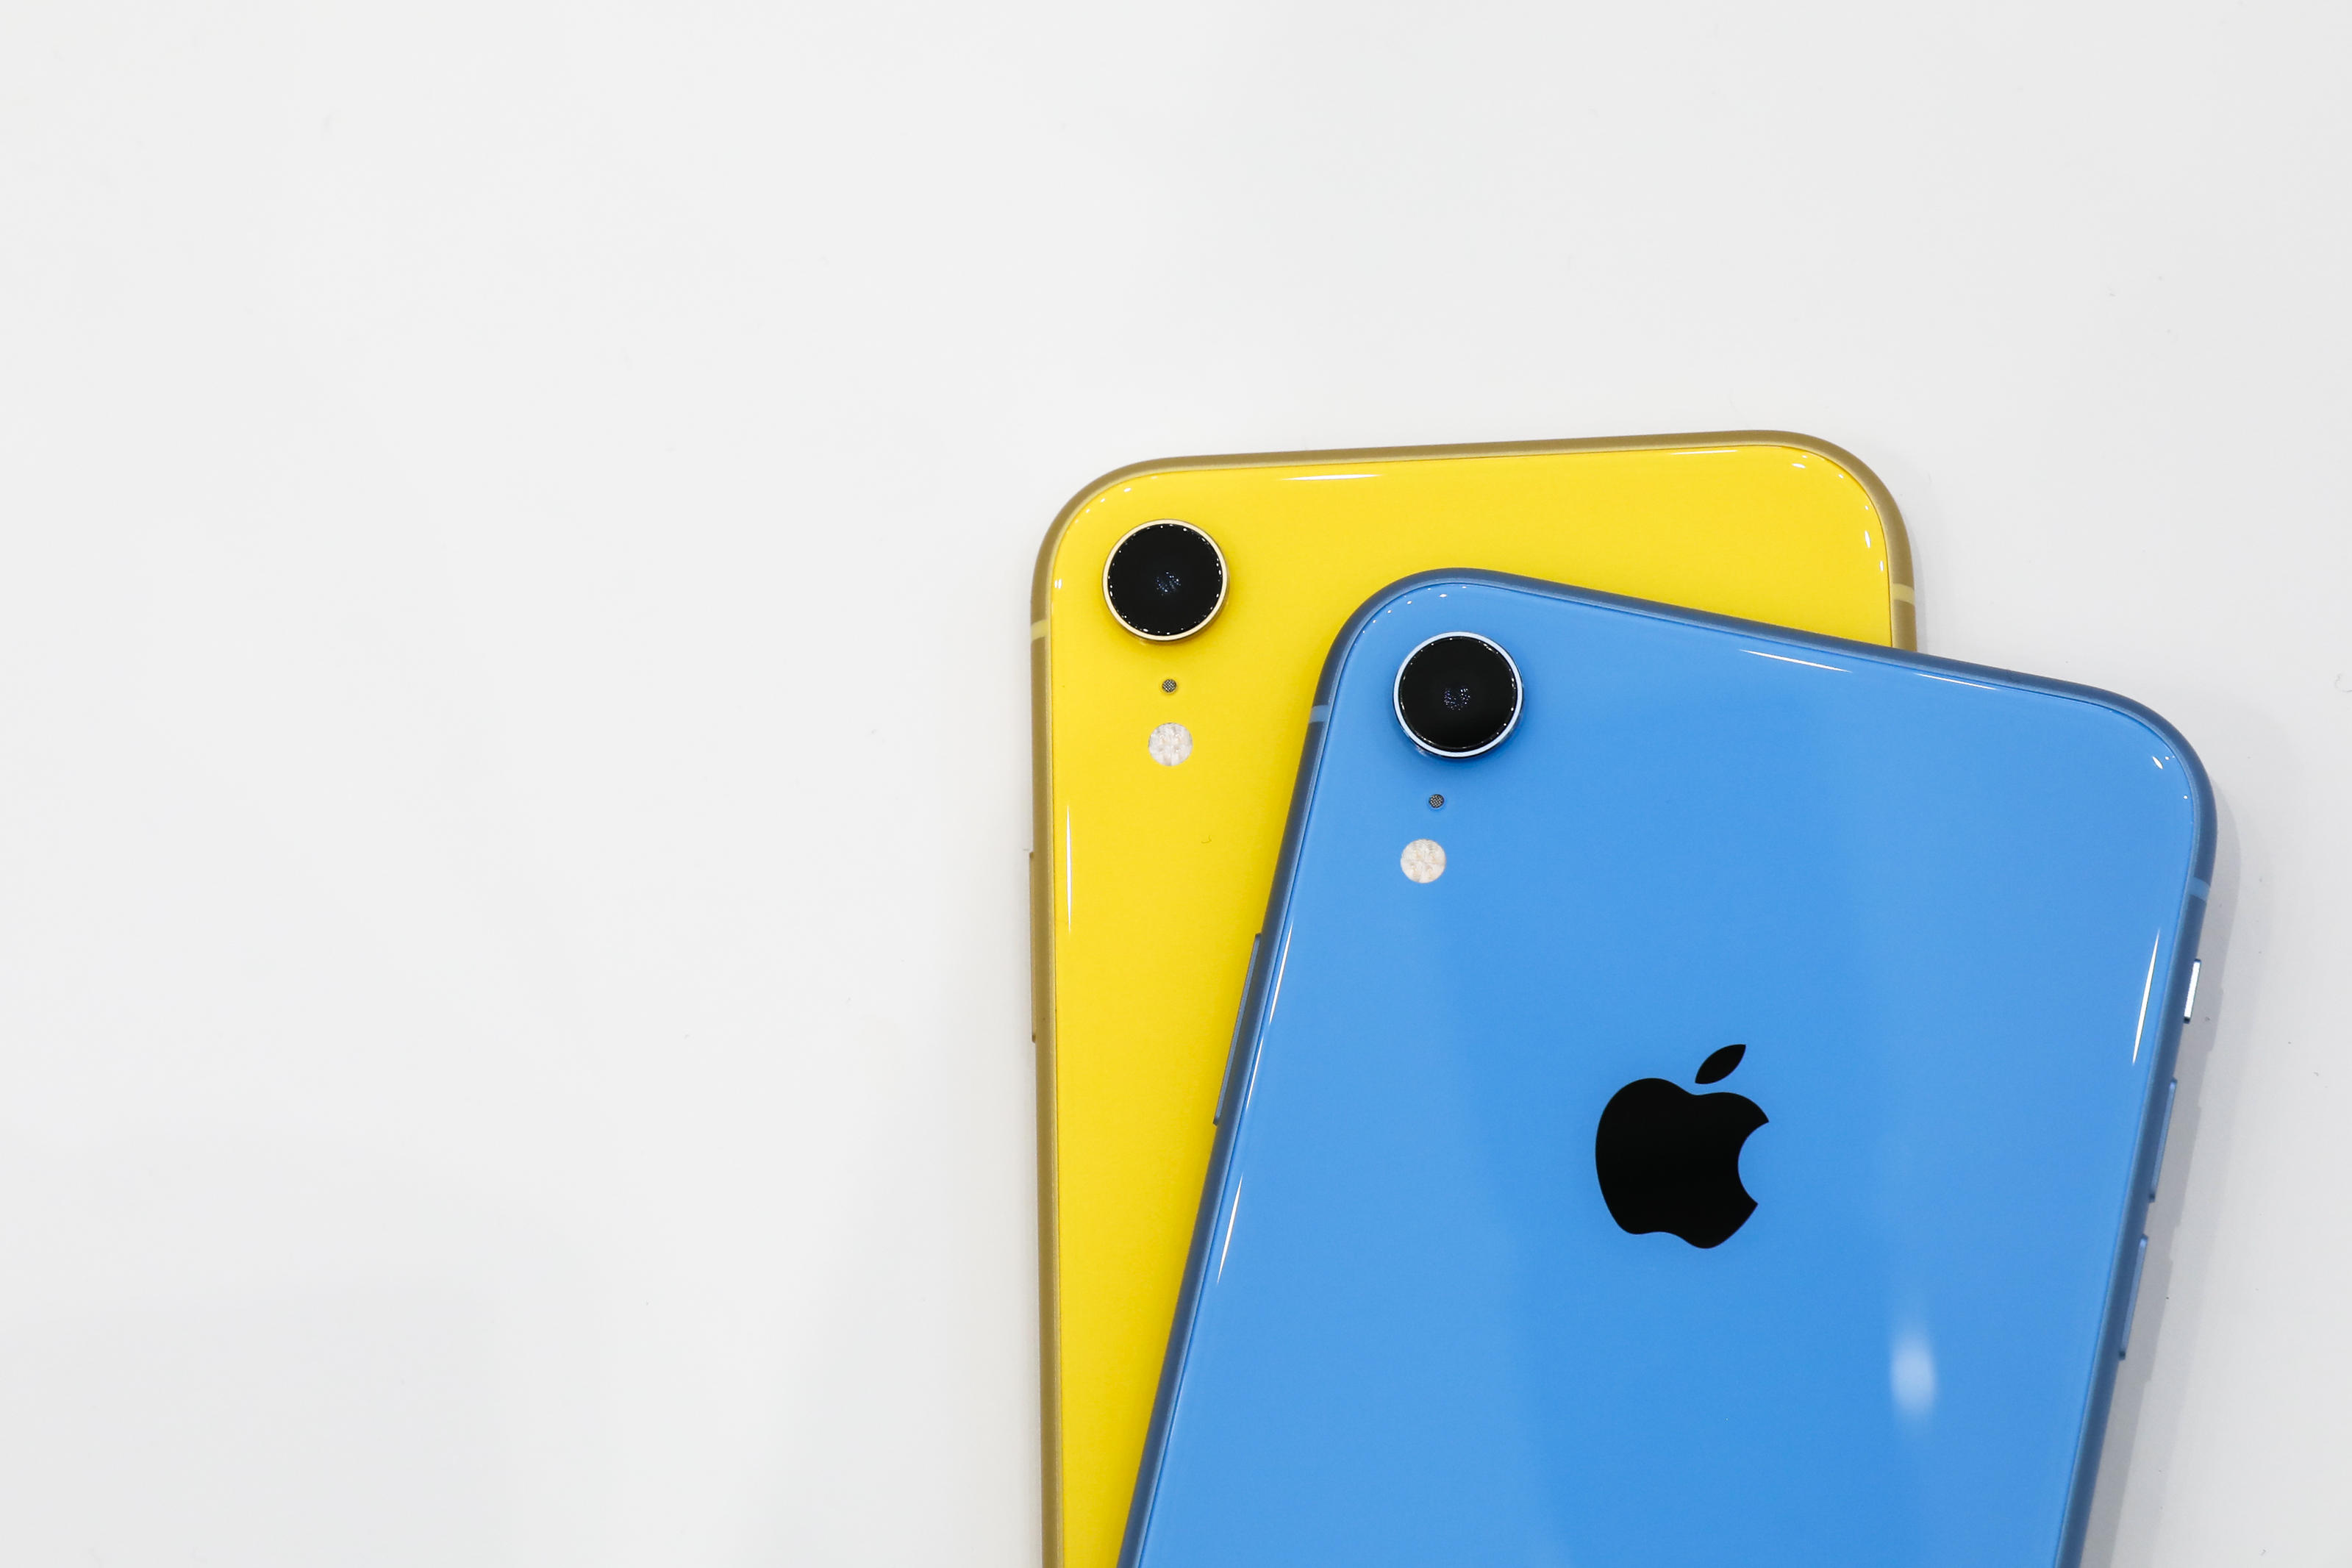 apple-event-091218-iphone-xr-0819